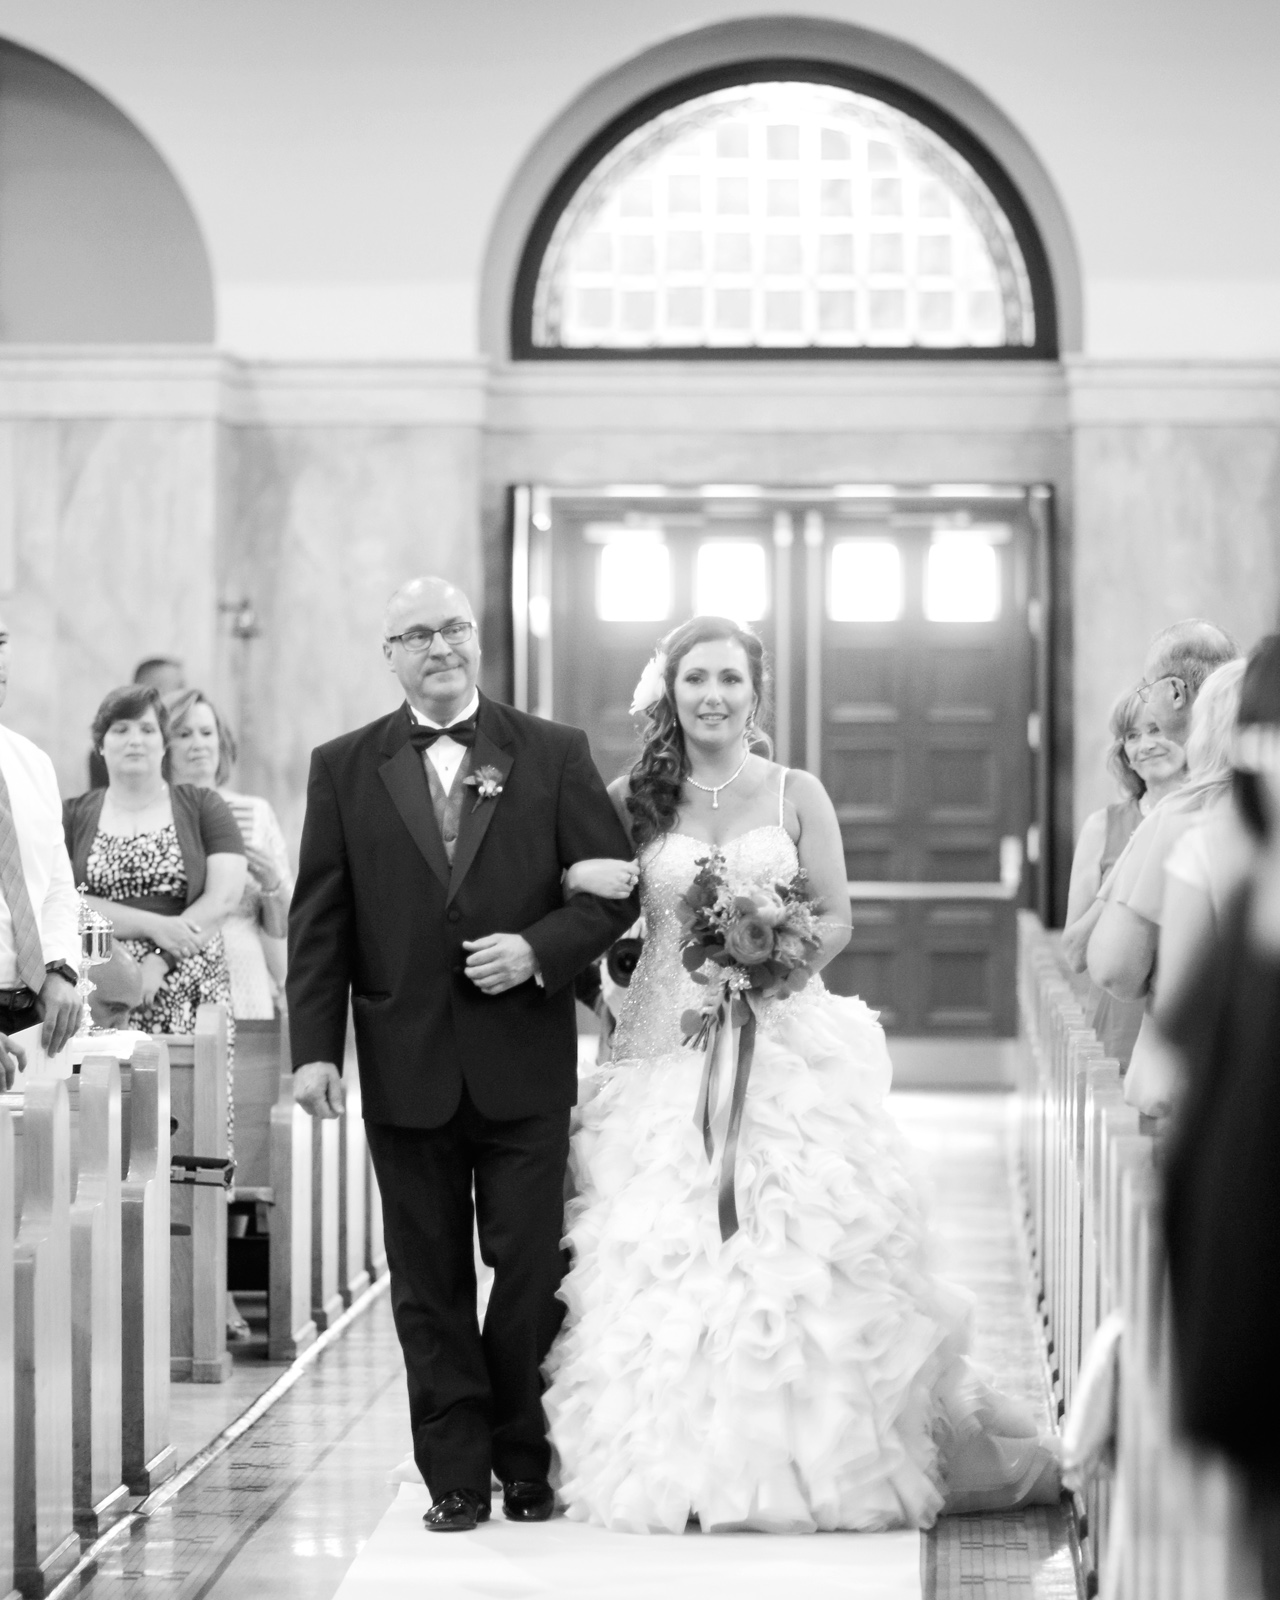 dad-walks-bride-aisle